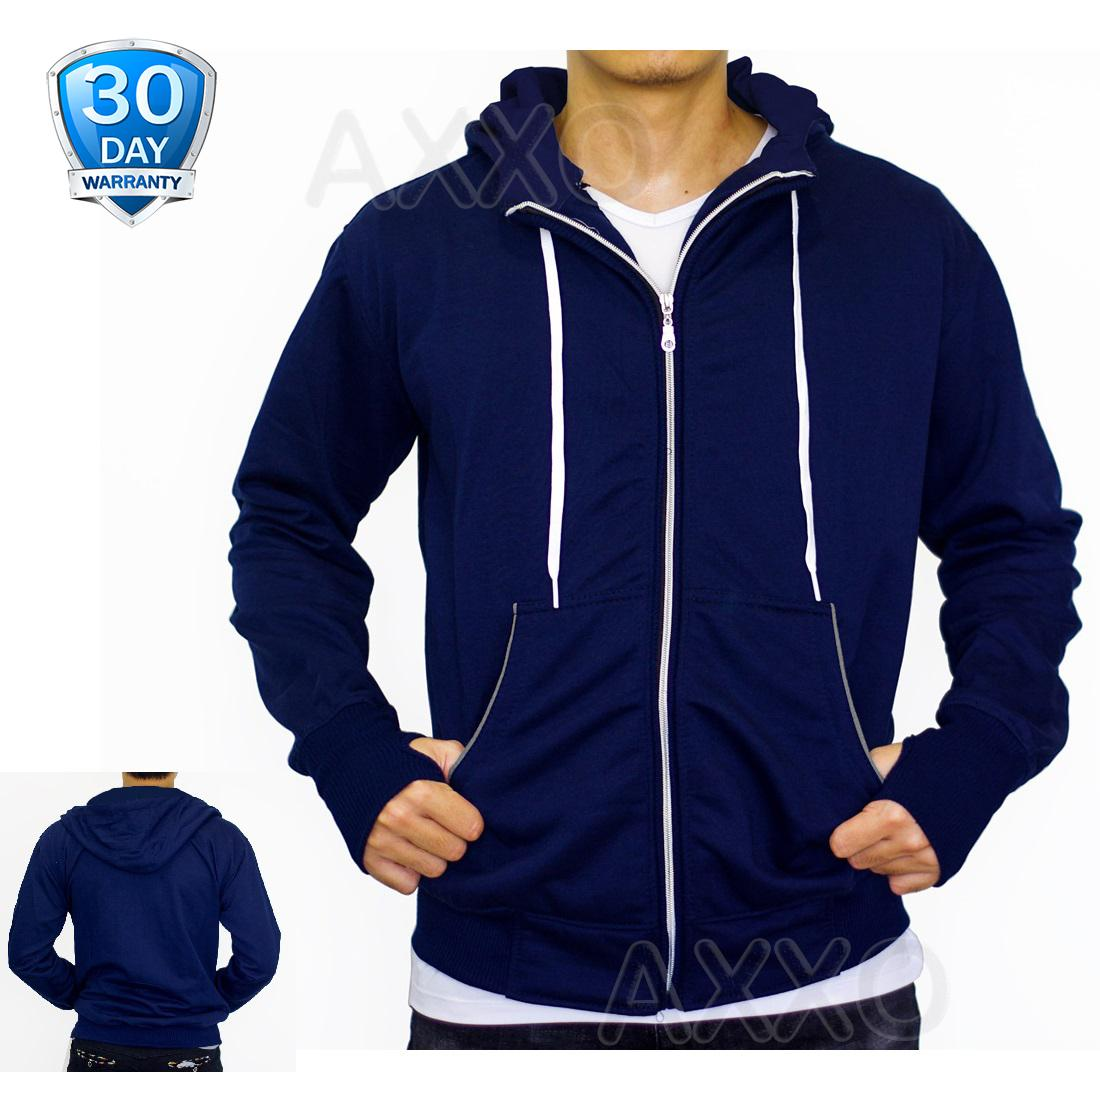 Jaket Sweater Hoodie Polos Switer Lubang Jempol Model Ariel Jaket Model  Korea Pria Mens Jacket Windproof e691904ac9